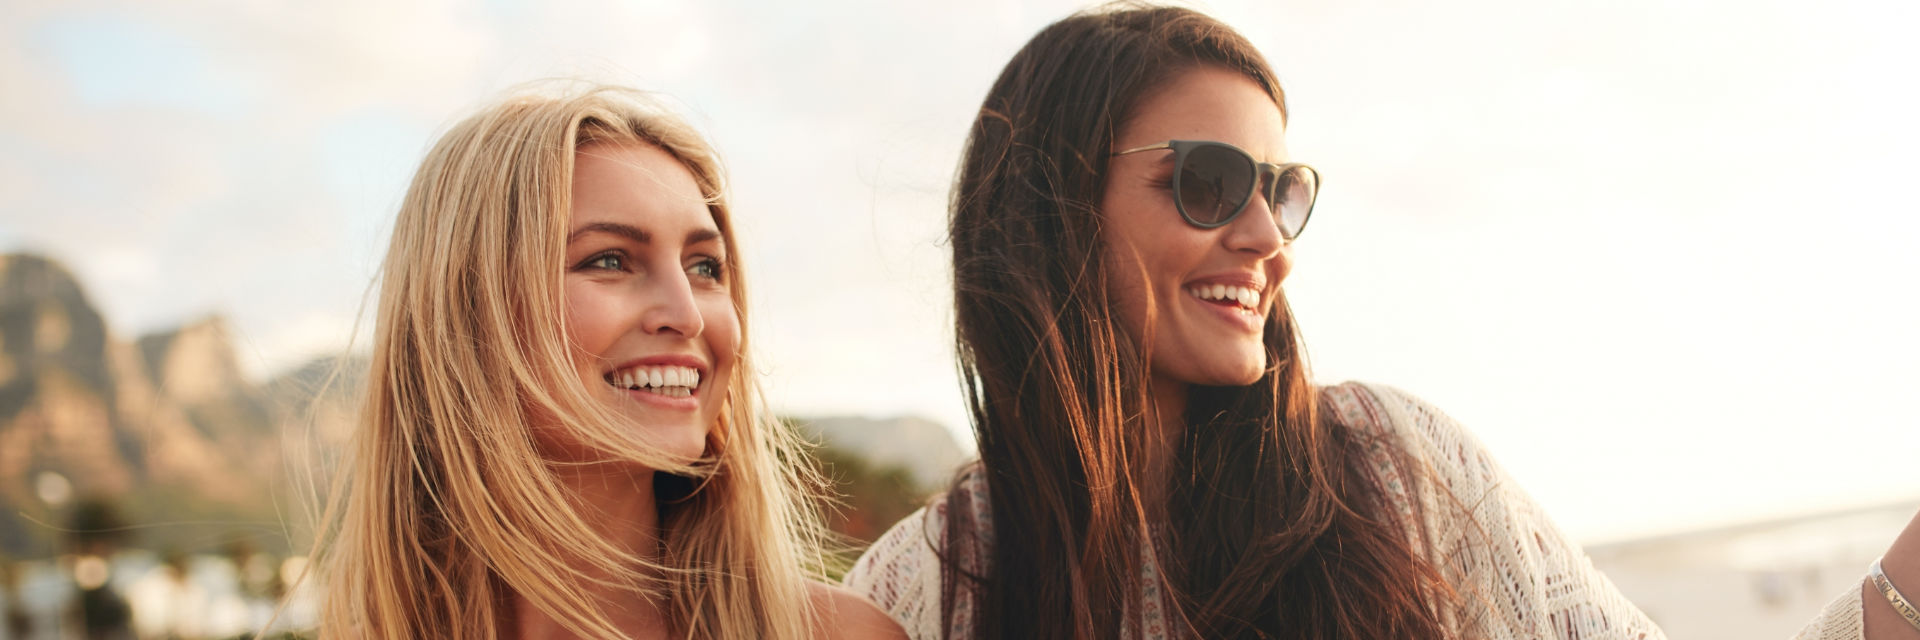 Two happy women with perfect smiles spending their time outdoors.